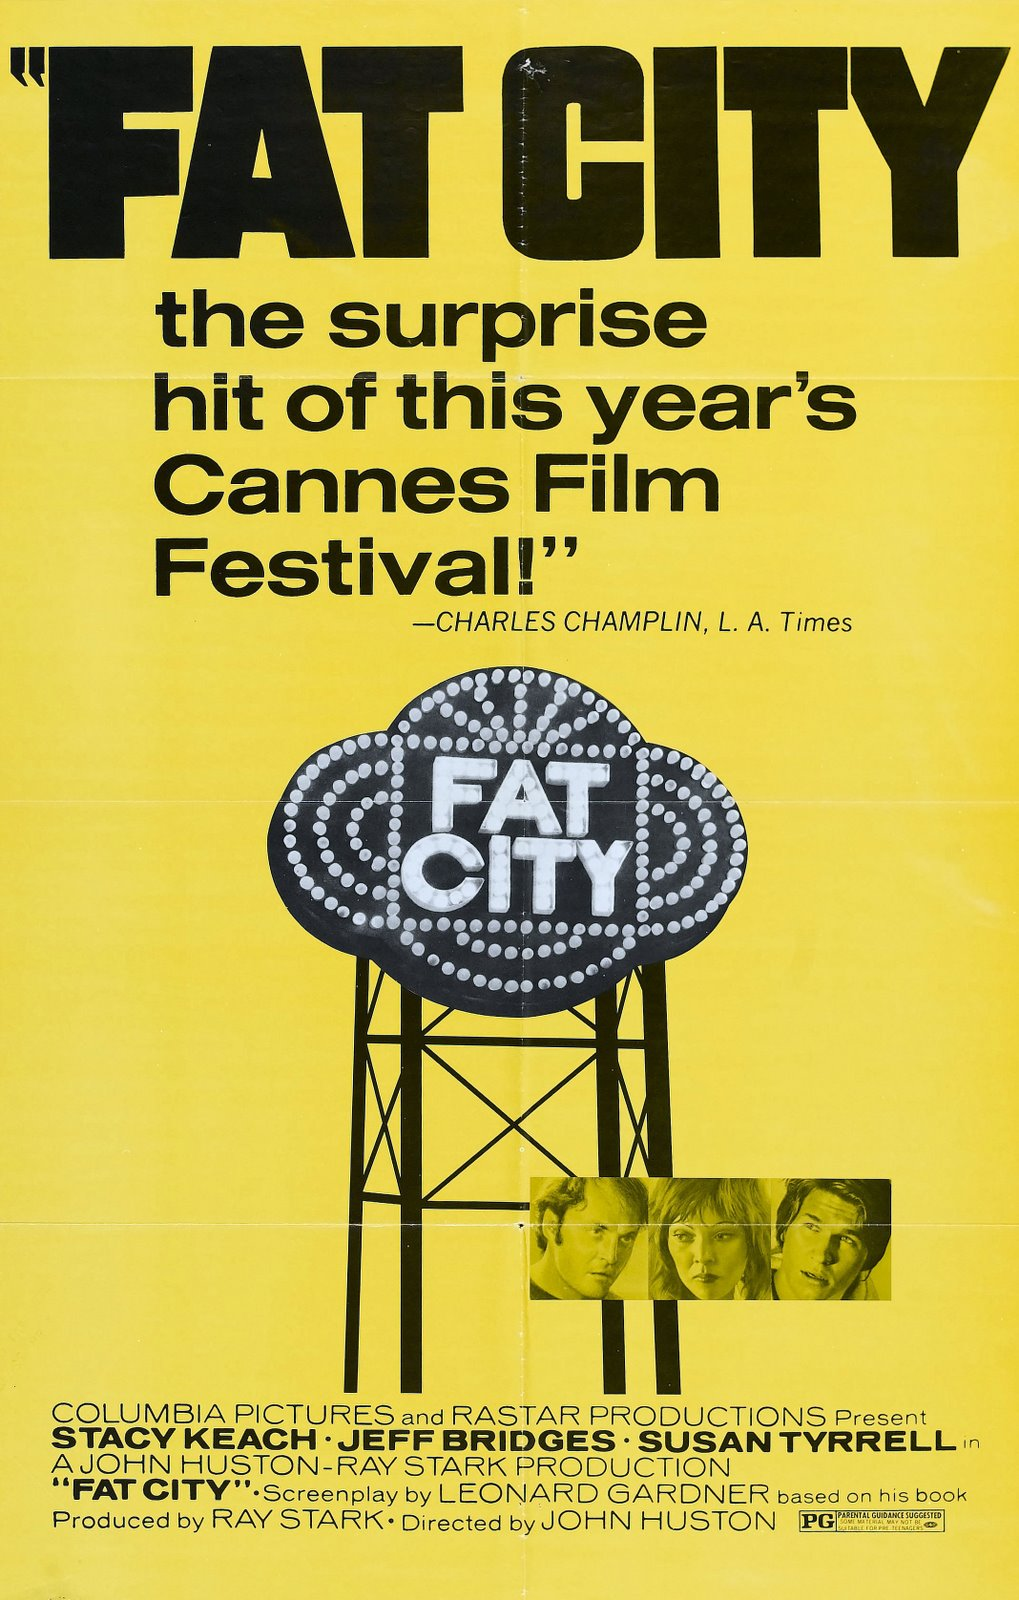 Every John Huston Movie: Fat City (1972)